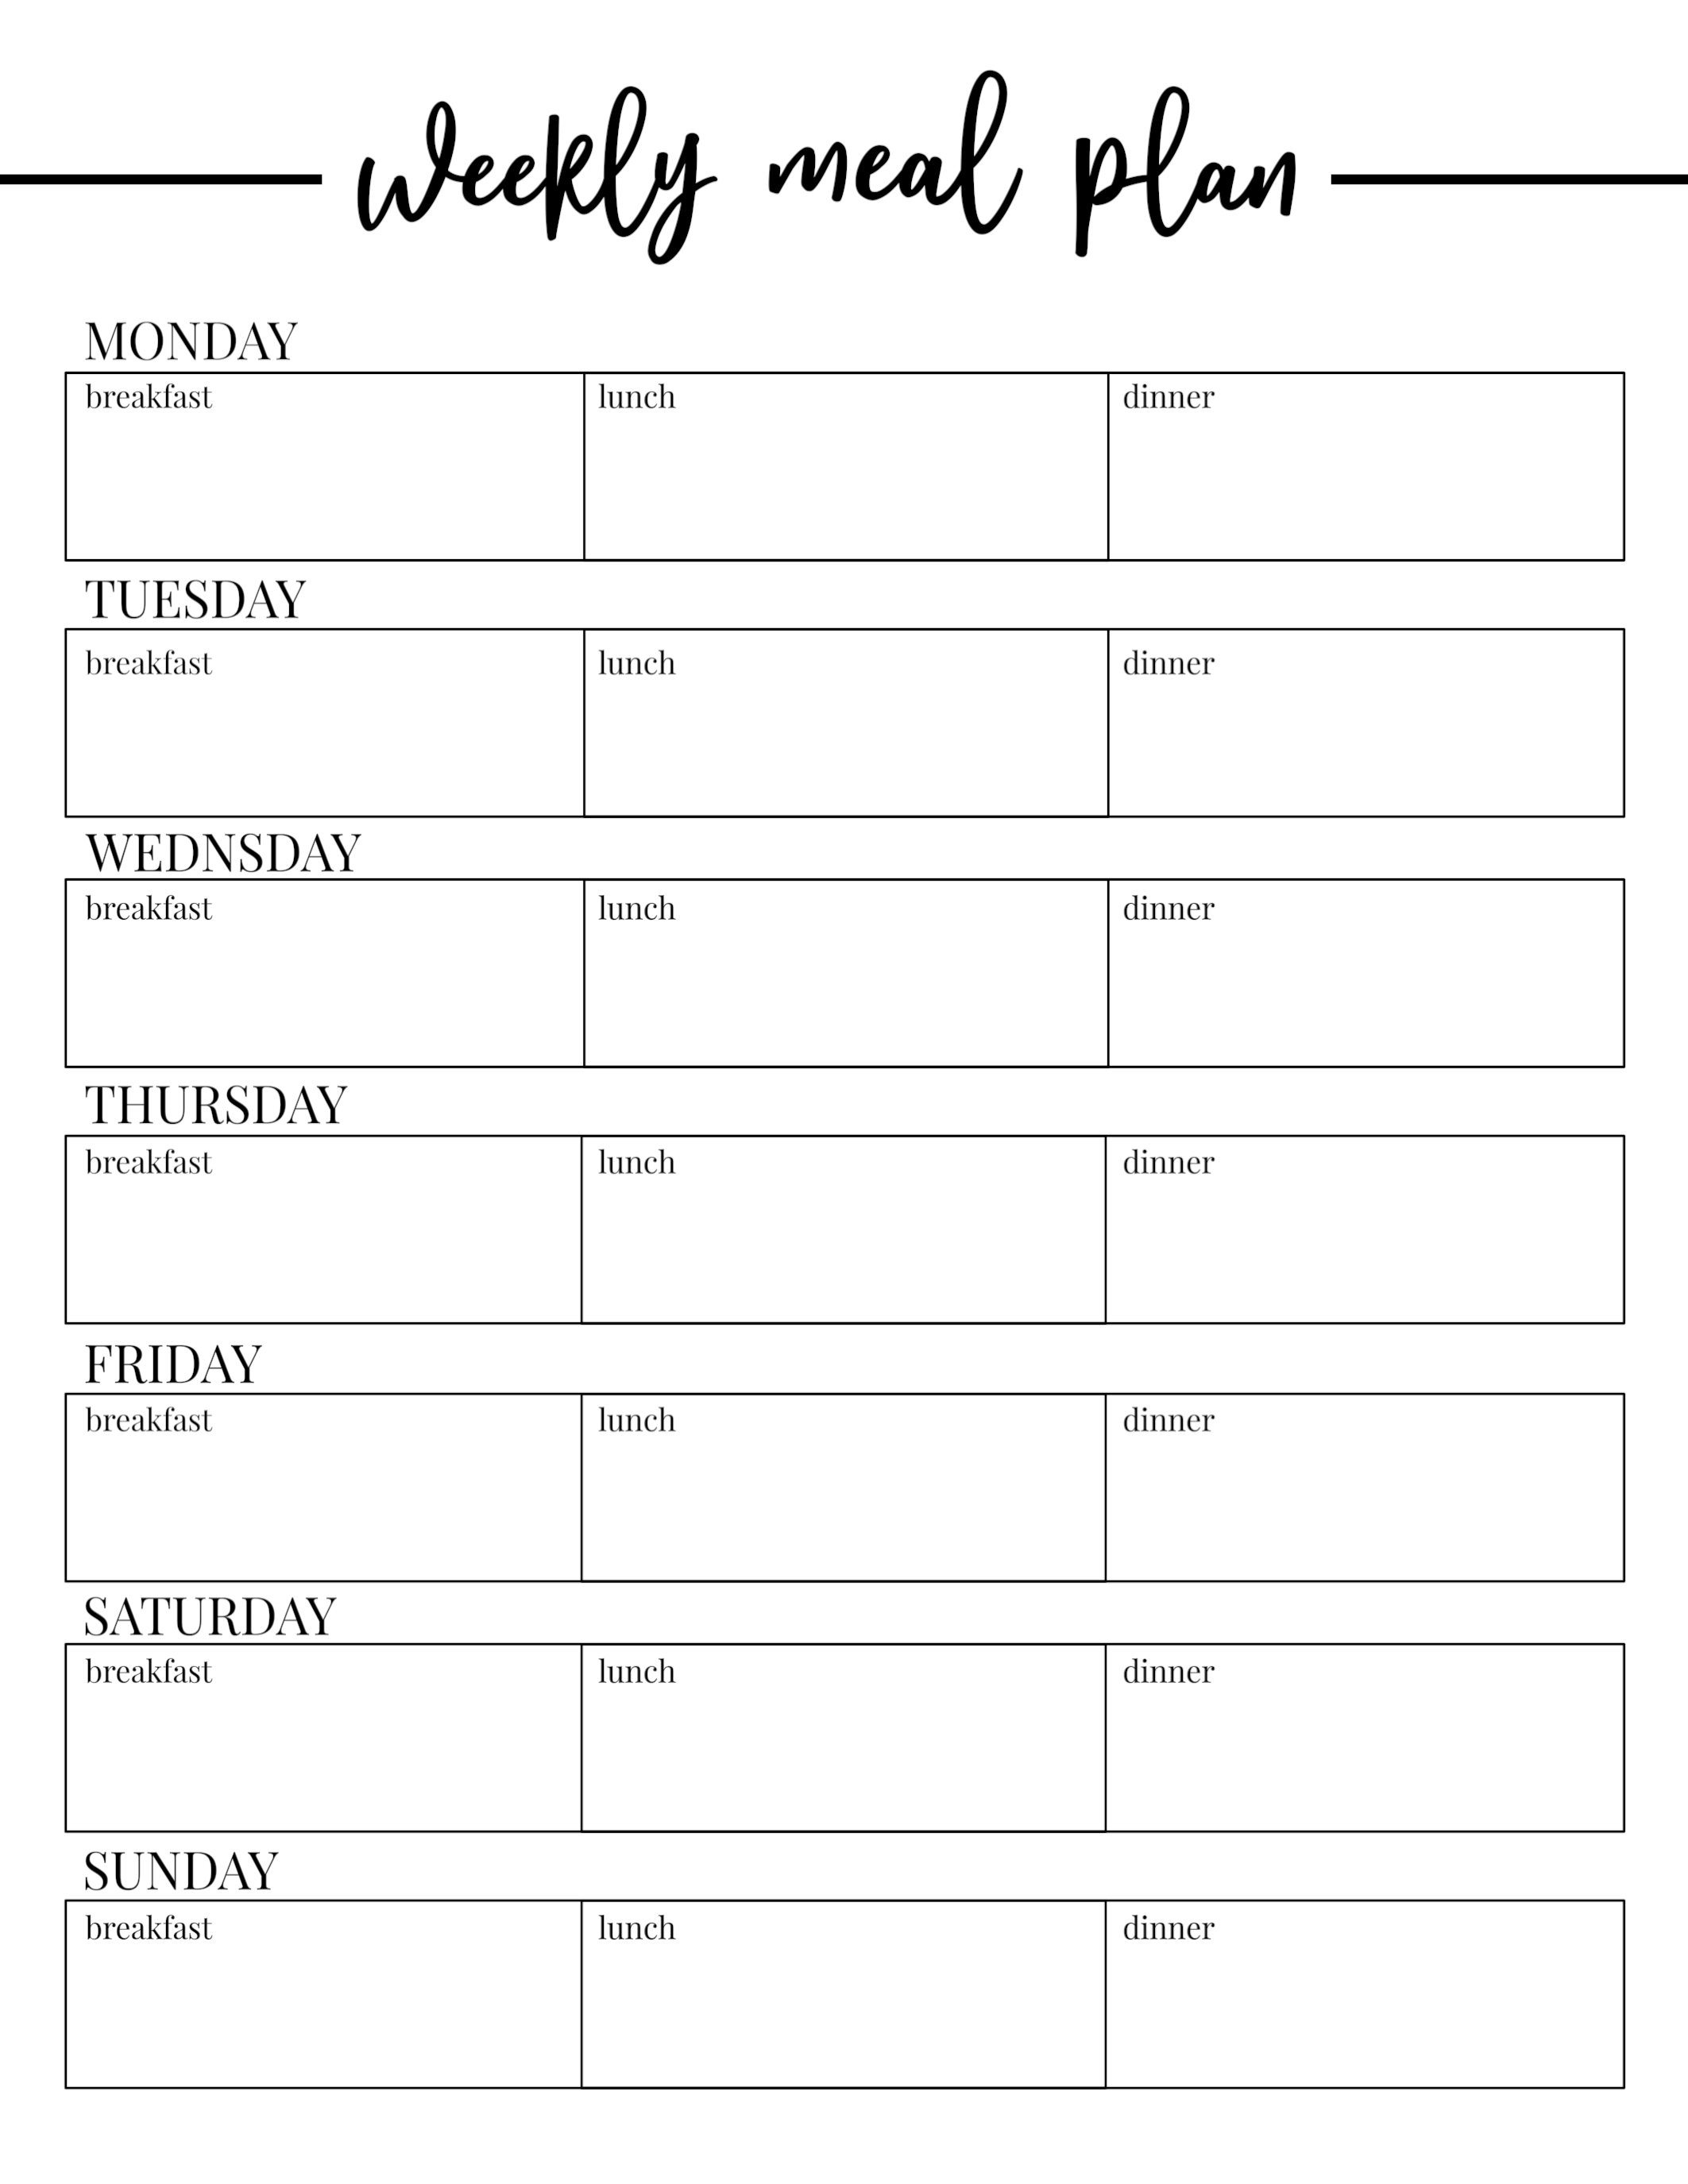 Free Printable Weekly Meal Plan Template